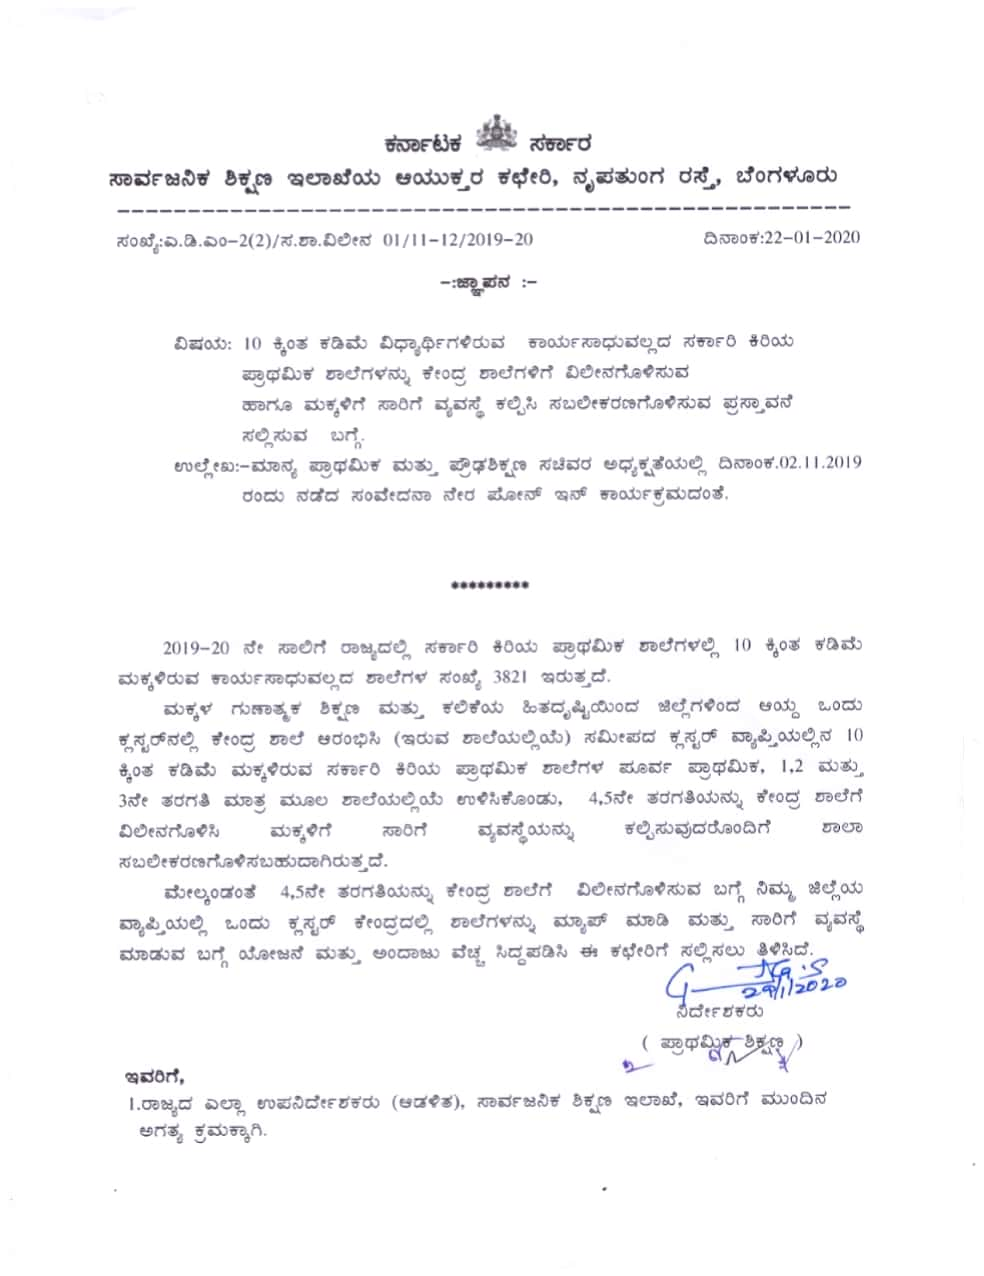 Circular regarding meeting of police, staff and officer staff registered under the Health Benefit Scheme